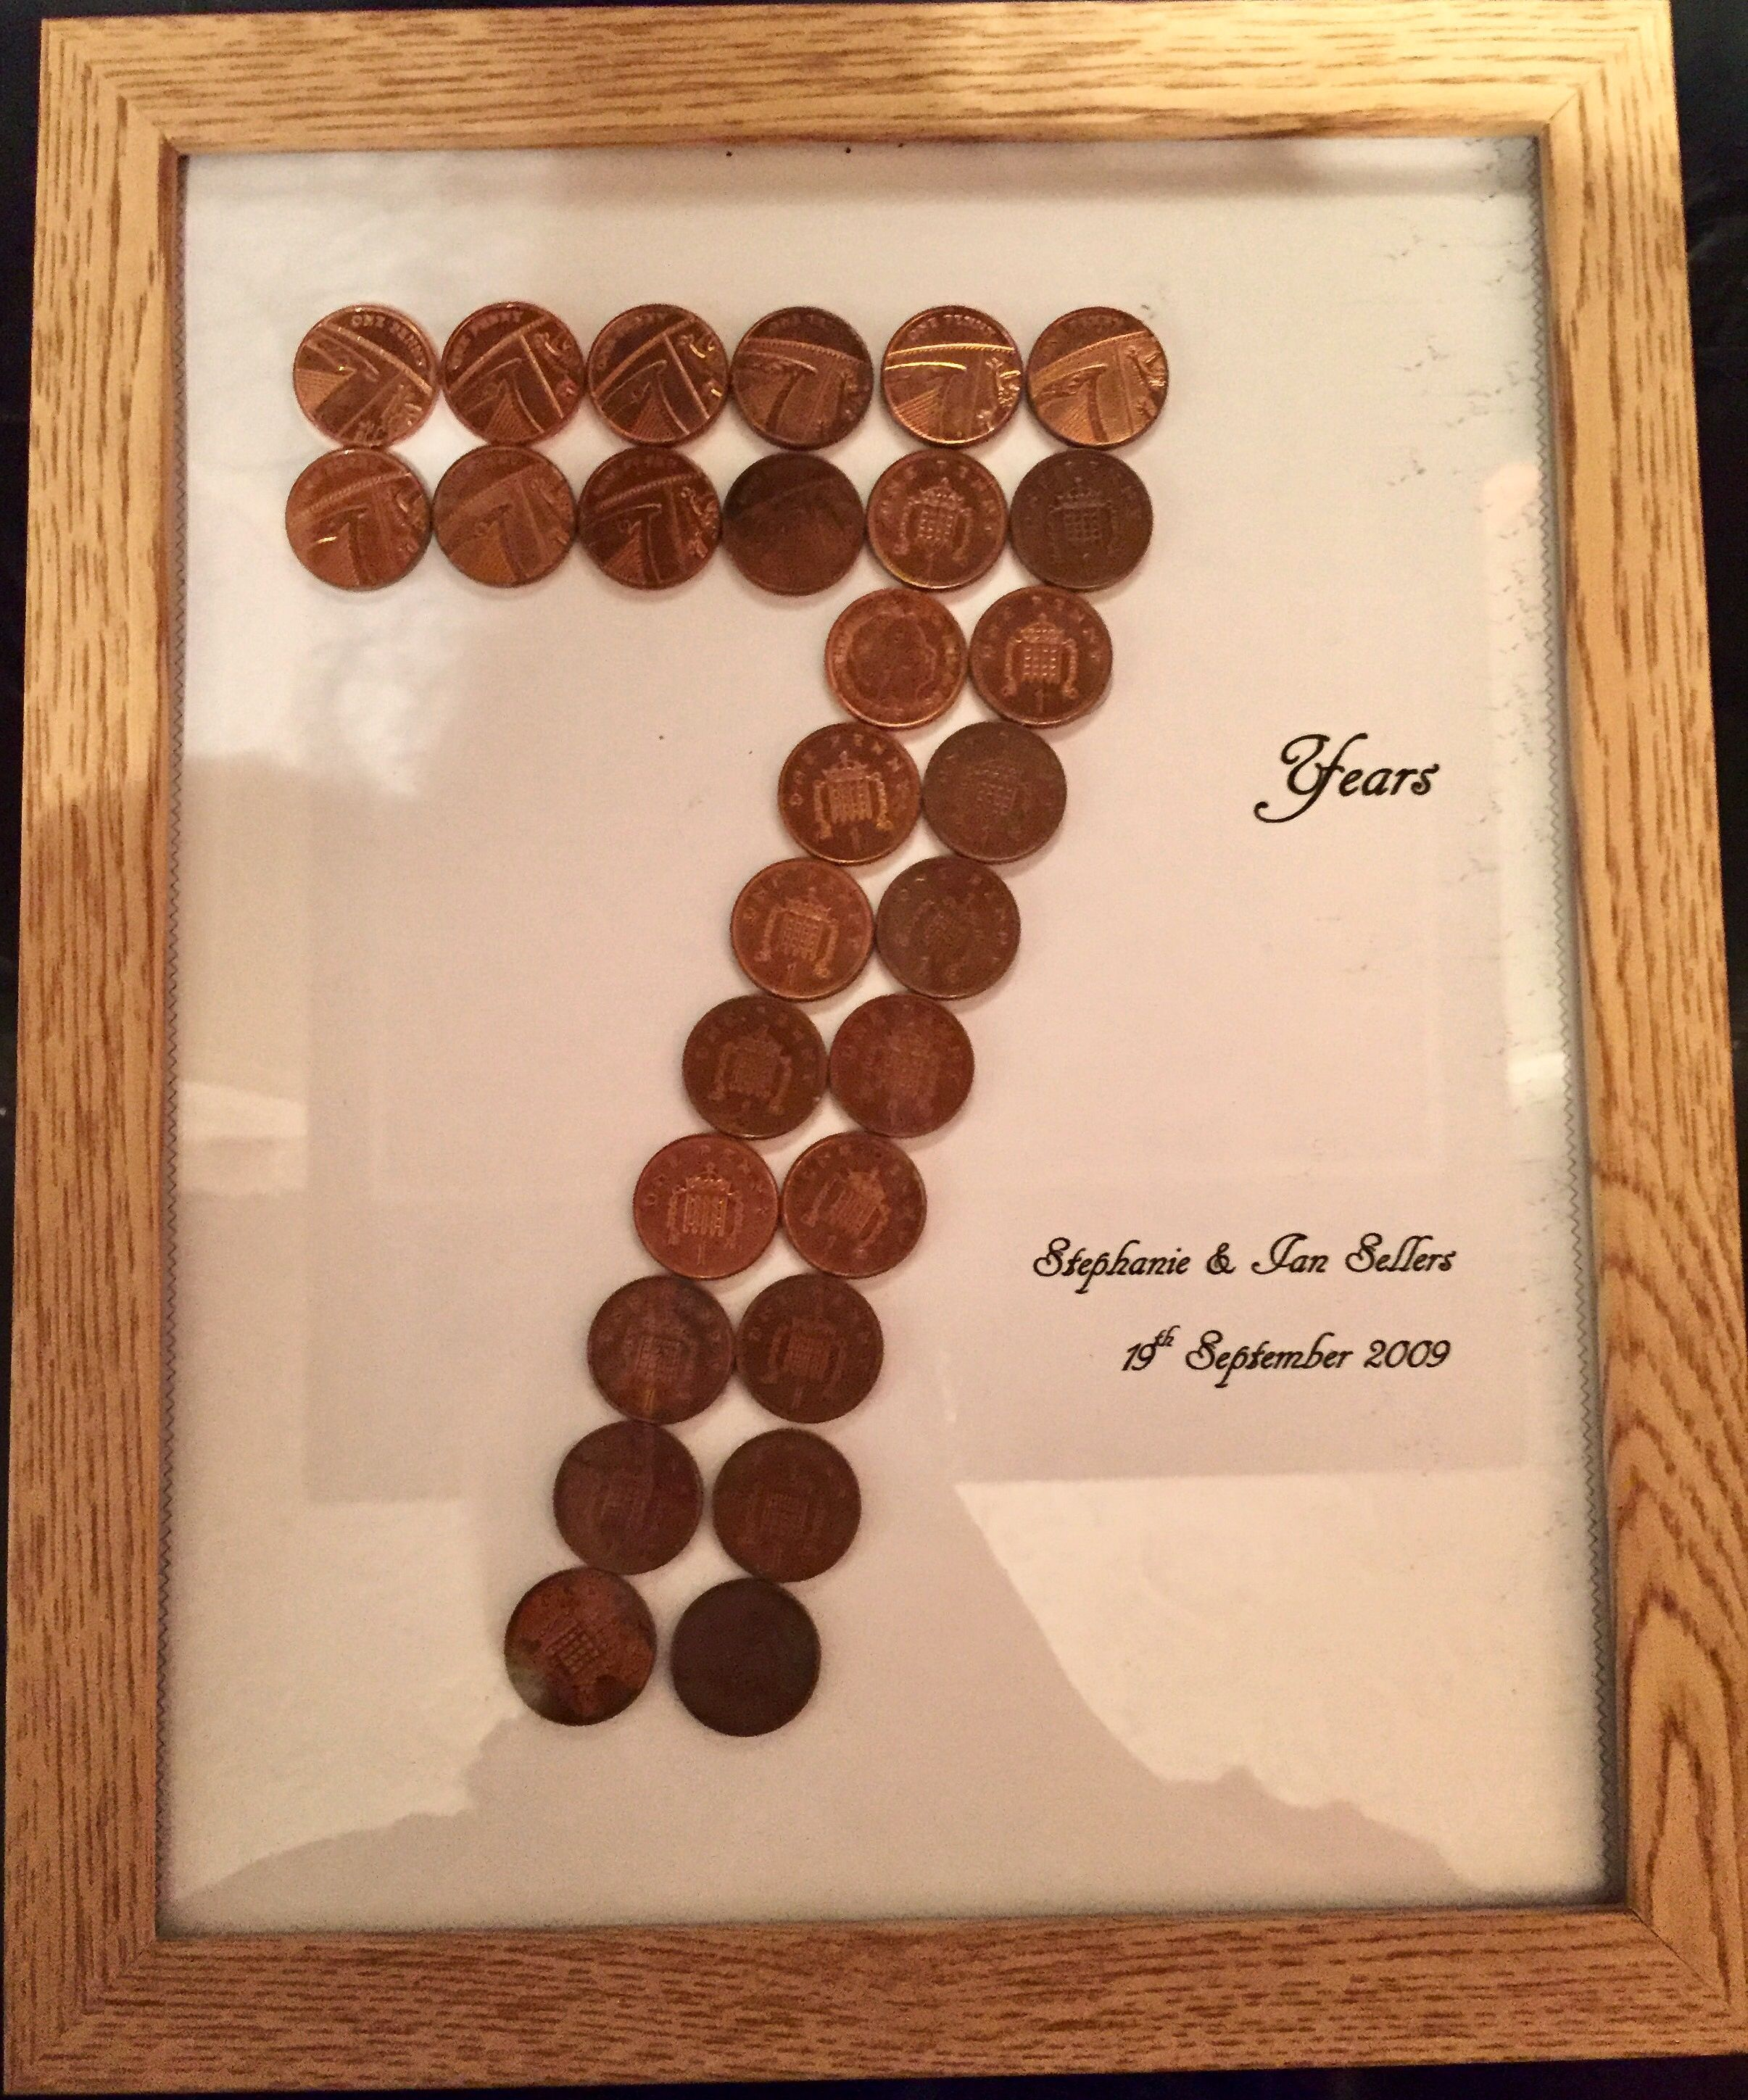 Wedding Anniversary Gifts By Year: 7th Wedding Anniversary (copper) Gift